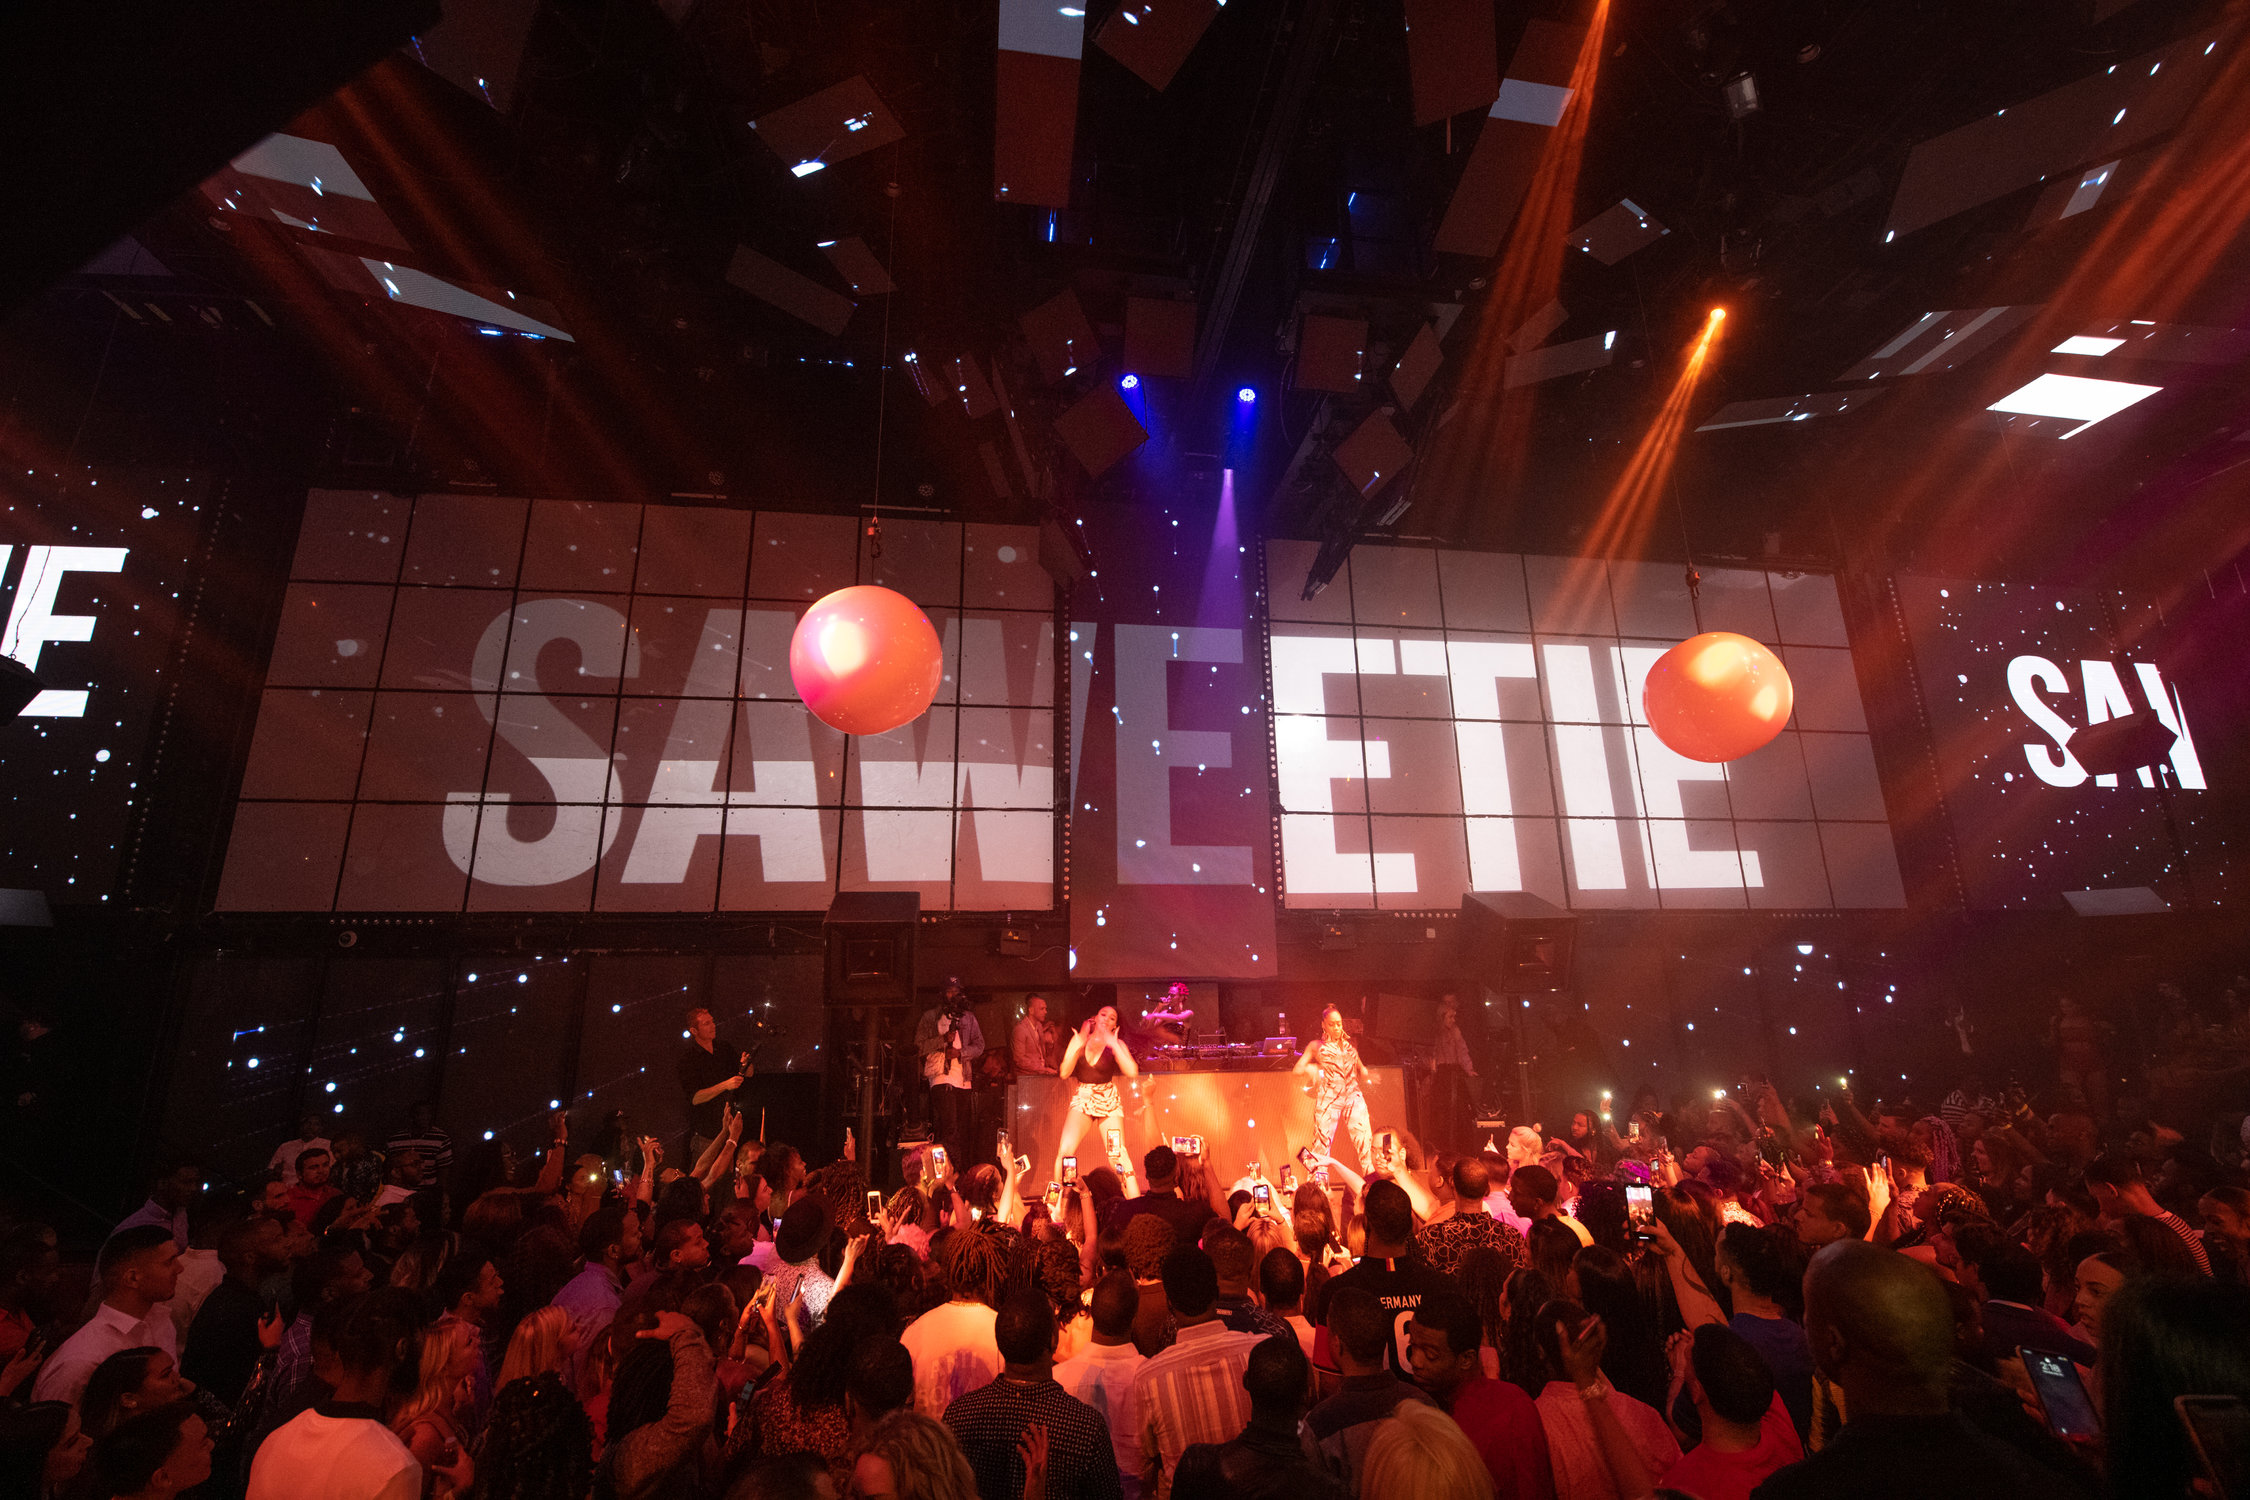 Entertainment News 2019, Las Vegas, Las Vegas 2019, Las Vegas Entertainment Scene 2019, Las Vegas Entertainment Shows 2019, Las Vegas News 2019, News 2019, Rapper Saweetie The Light, Saweetie at The Light October 19th, Saweetie Las Vegas 2019, Saweetie The Light 2019, The Light Saweetie 2019